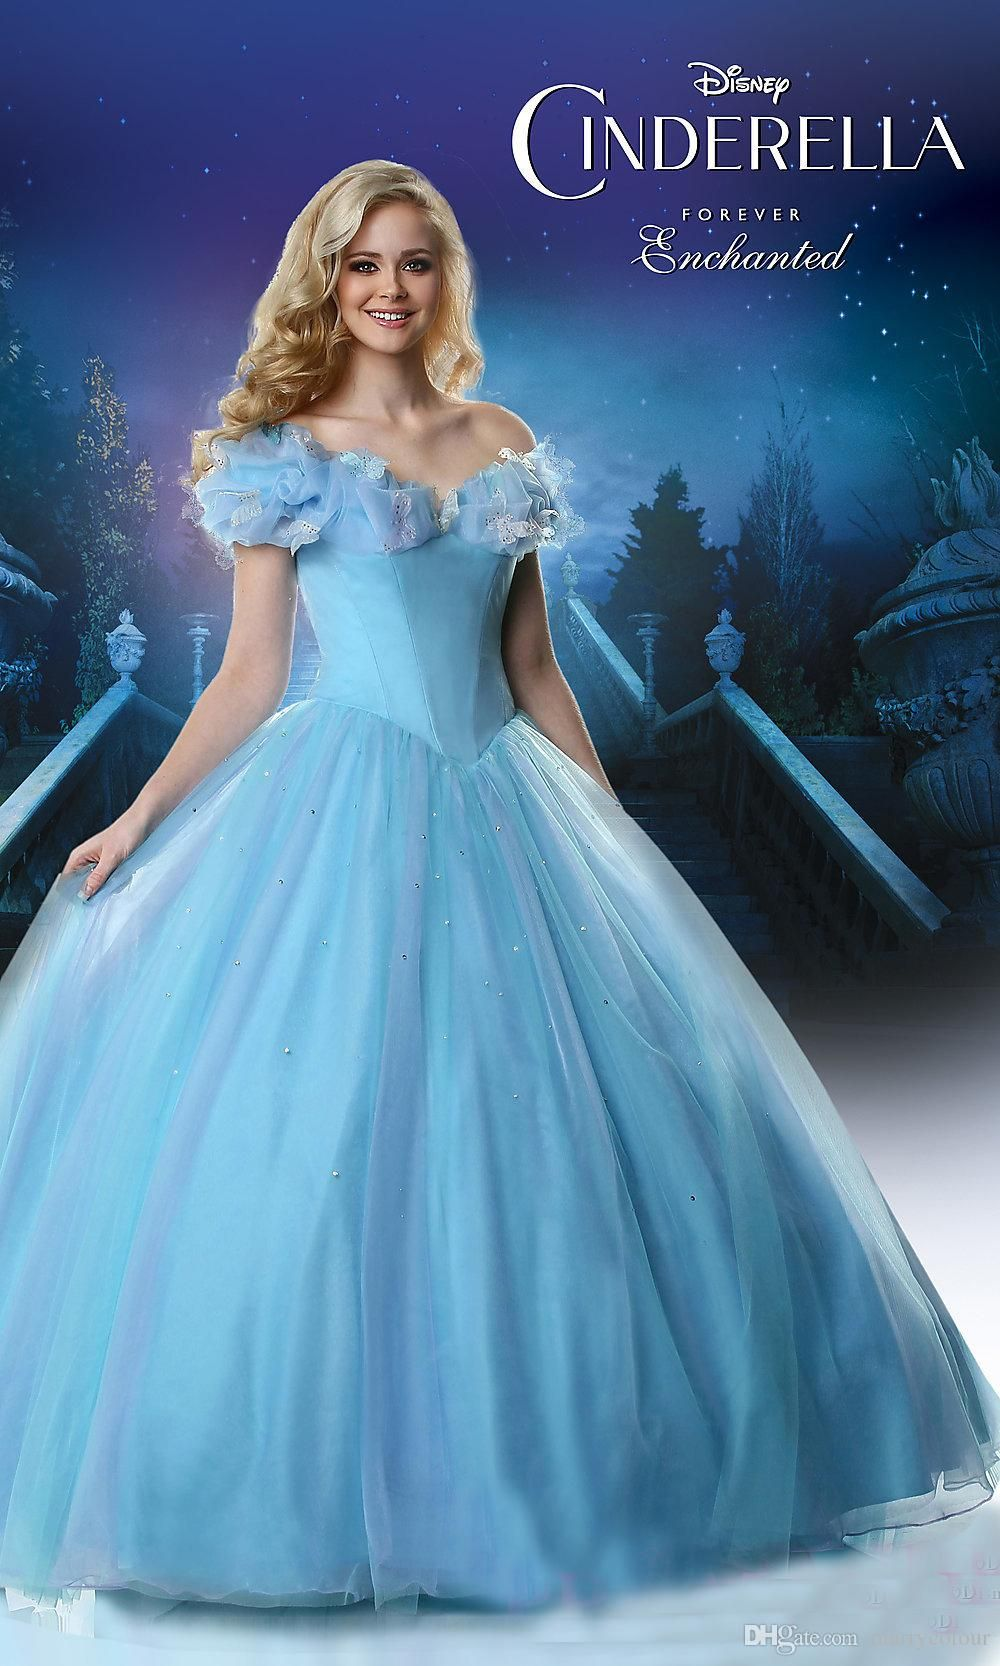 2015 New Movie Deluxe Cinderella Prom Dresses Cosplay Costume Party Dress  Princess Gown Butterfly Neck Puffy Big Ball Gown Hot Sale ac8367d53b64